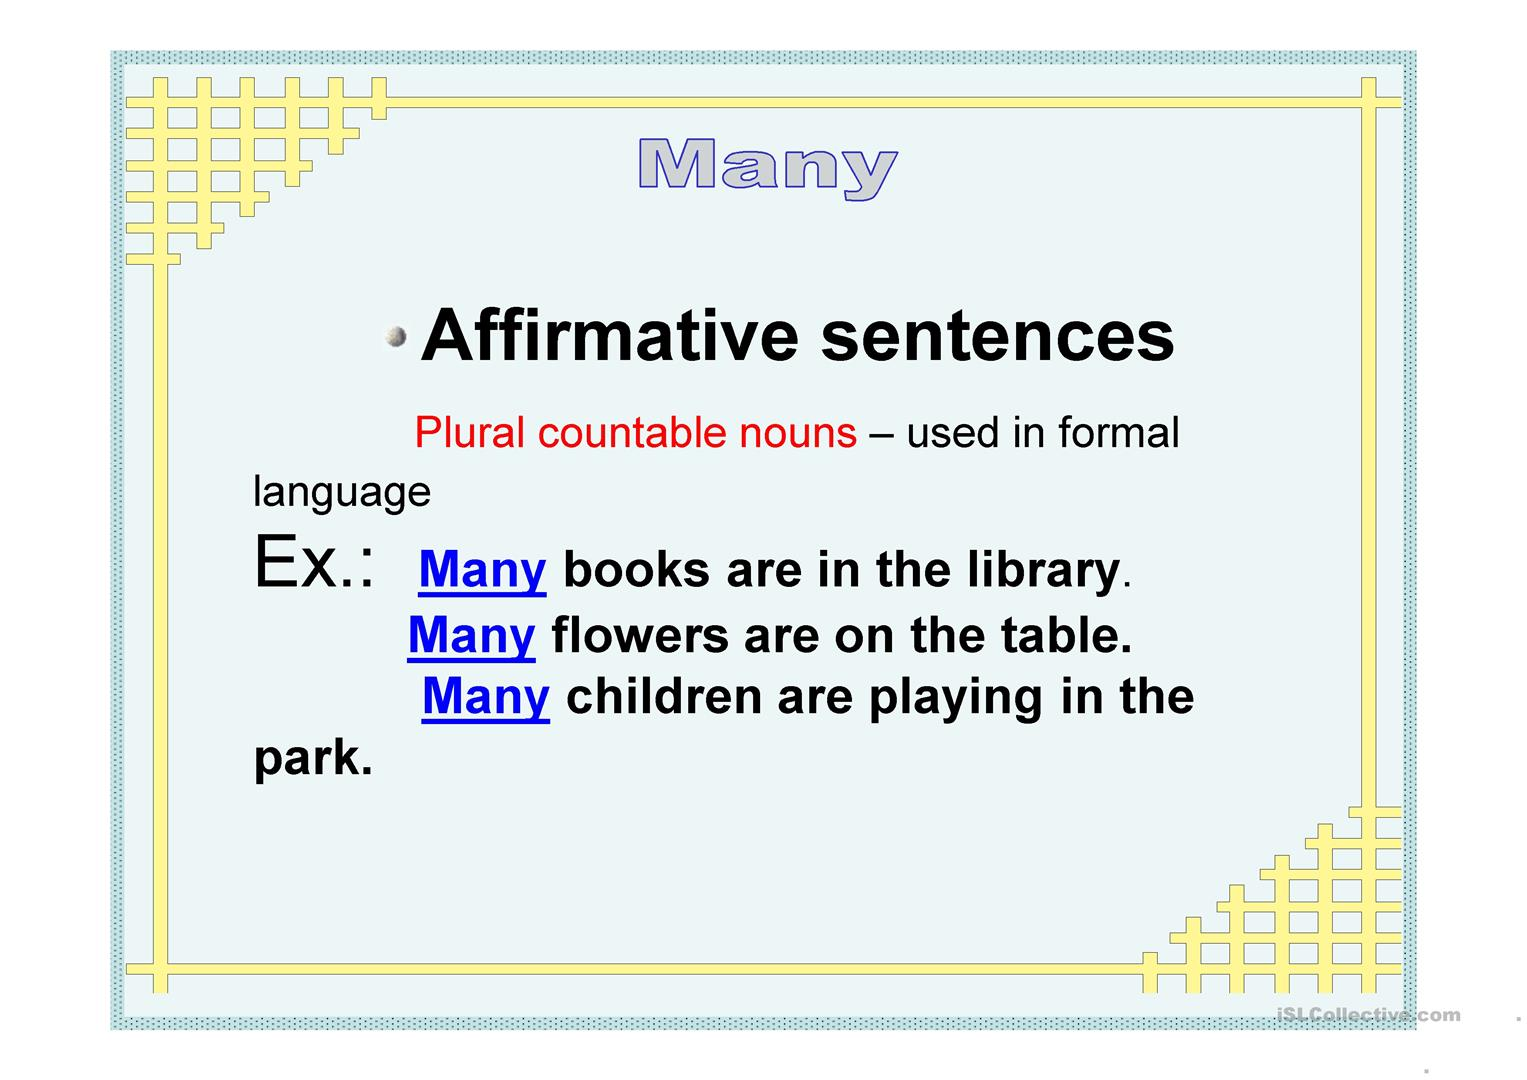 some any much many a lot of grammar pdf